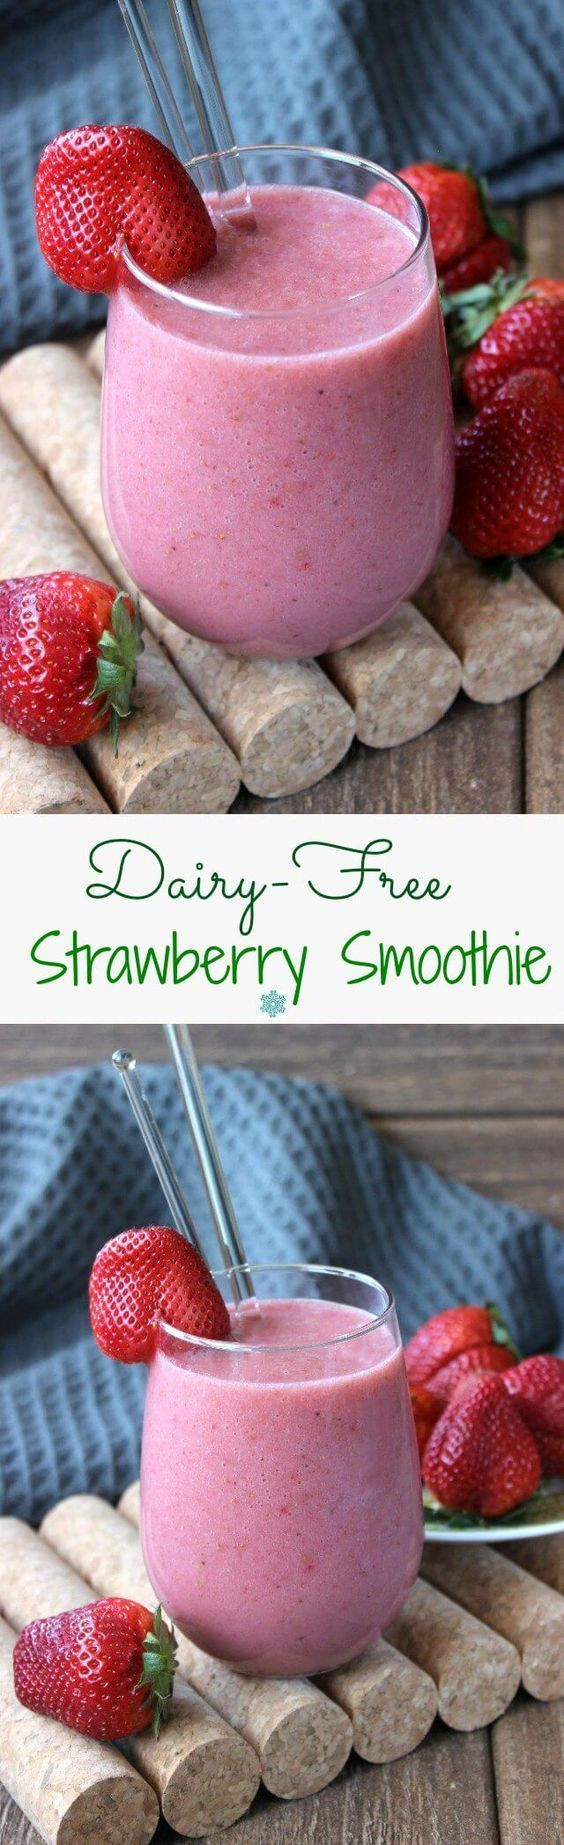 Dairy Free Smoothie Recipes  25 best ideas about Dairy free smoothie on Pinterest